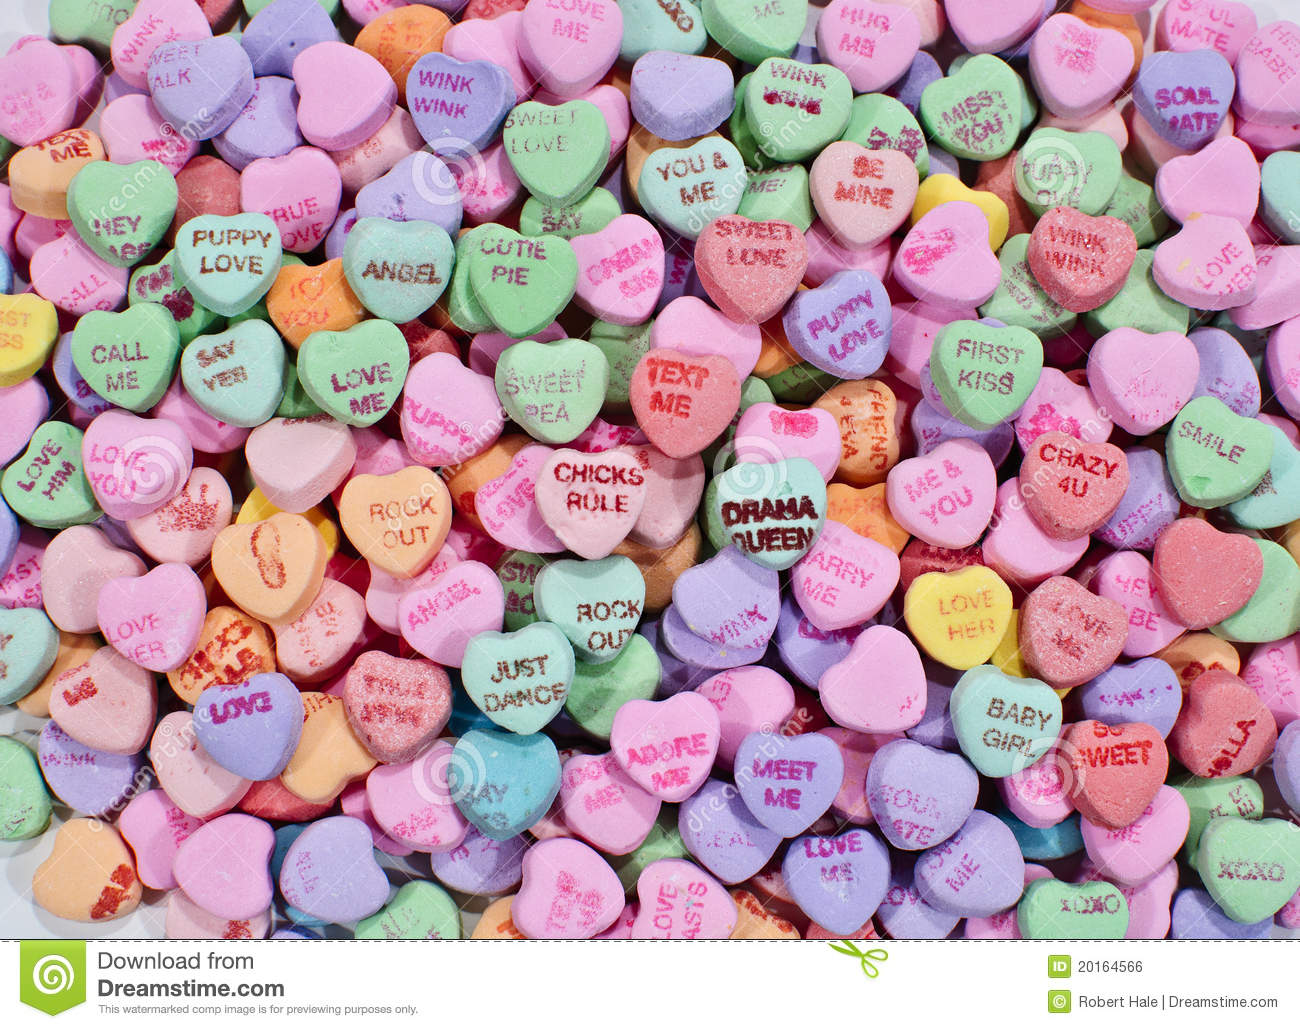 Candy Hearts Wallpaper - WallpaperSafari